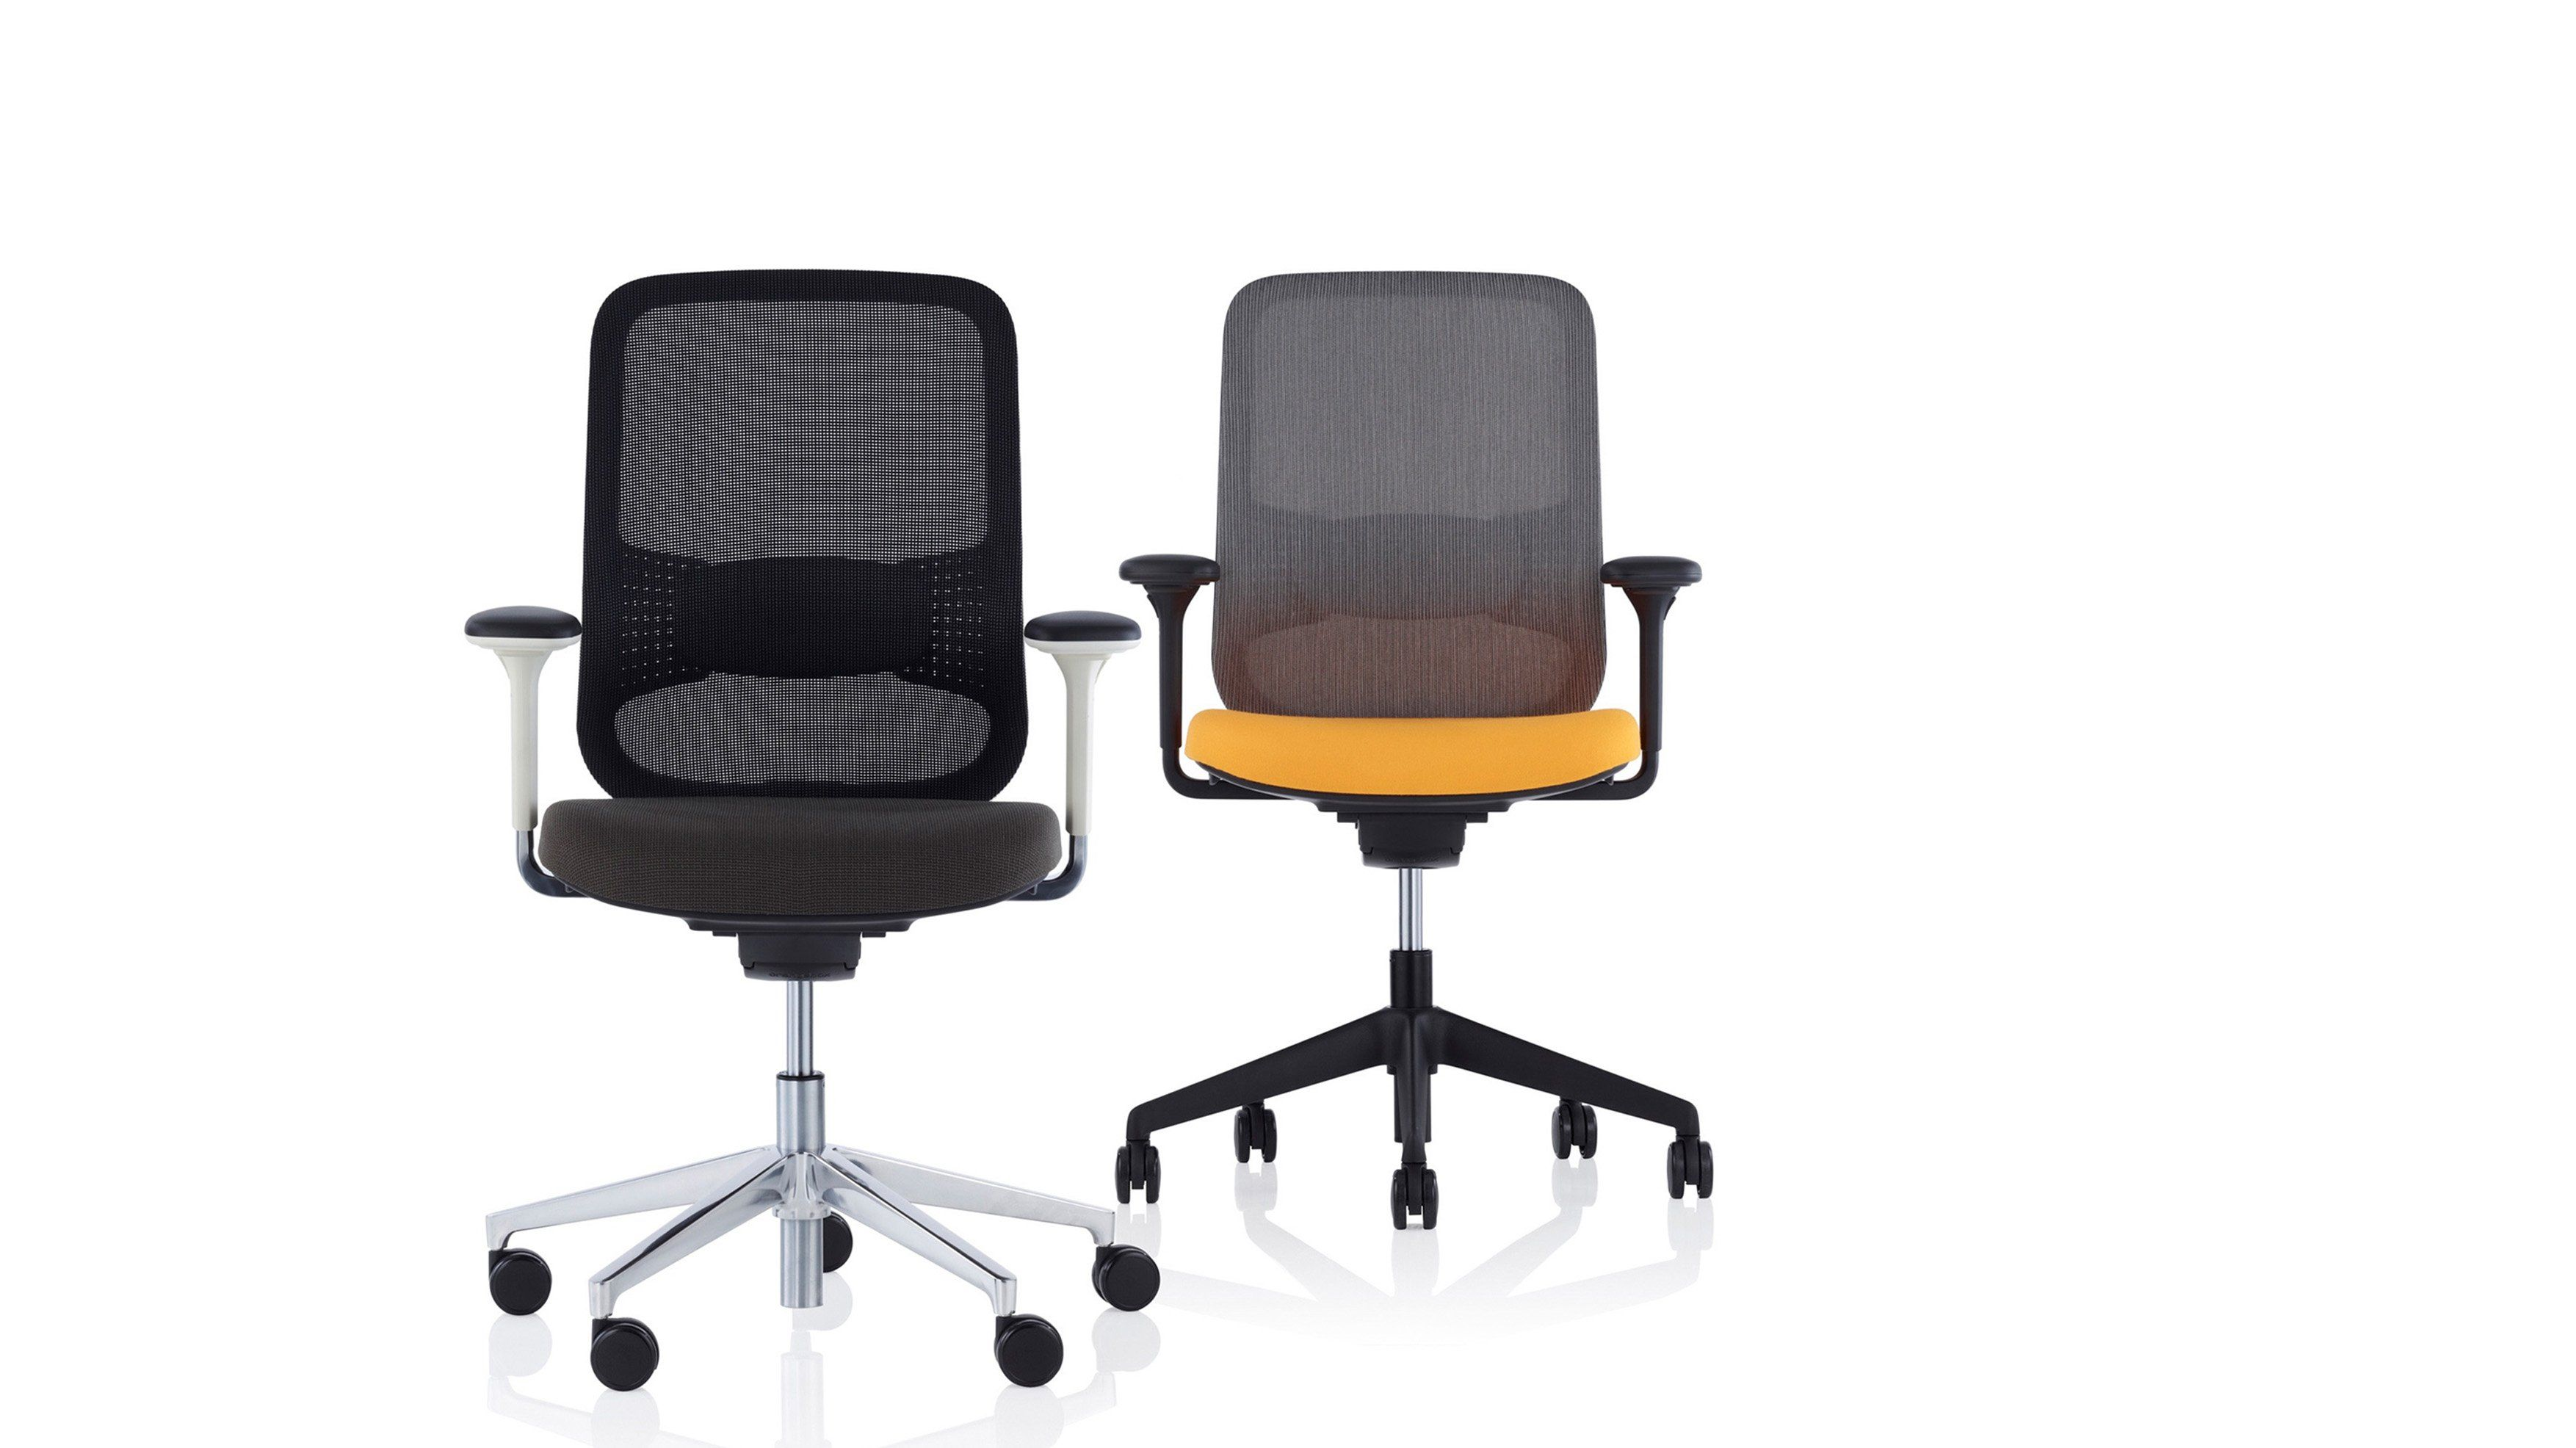 cab4e935e44b859b7a66d970bc71328a - 'Do' Chair - White / Forward - work-from-home